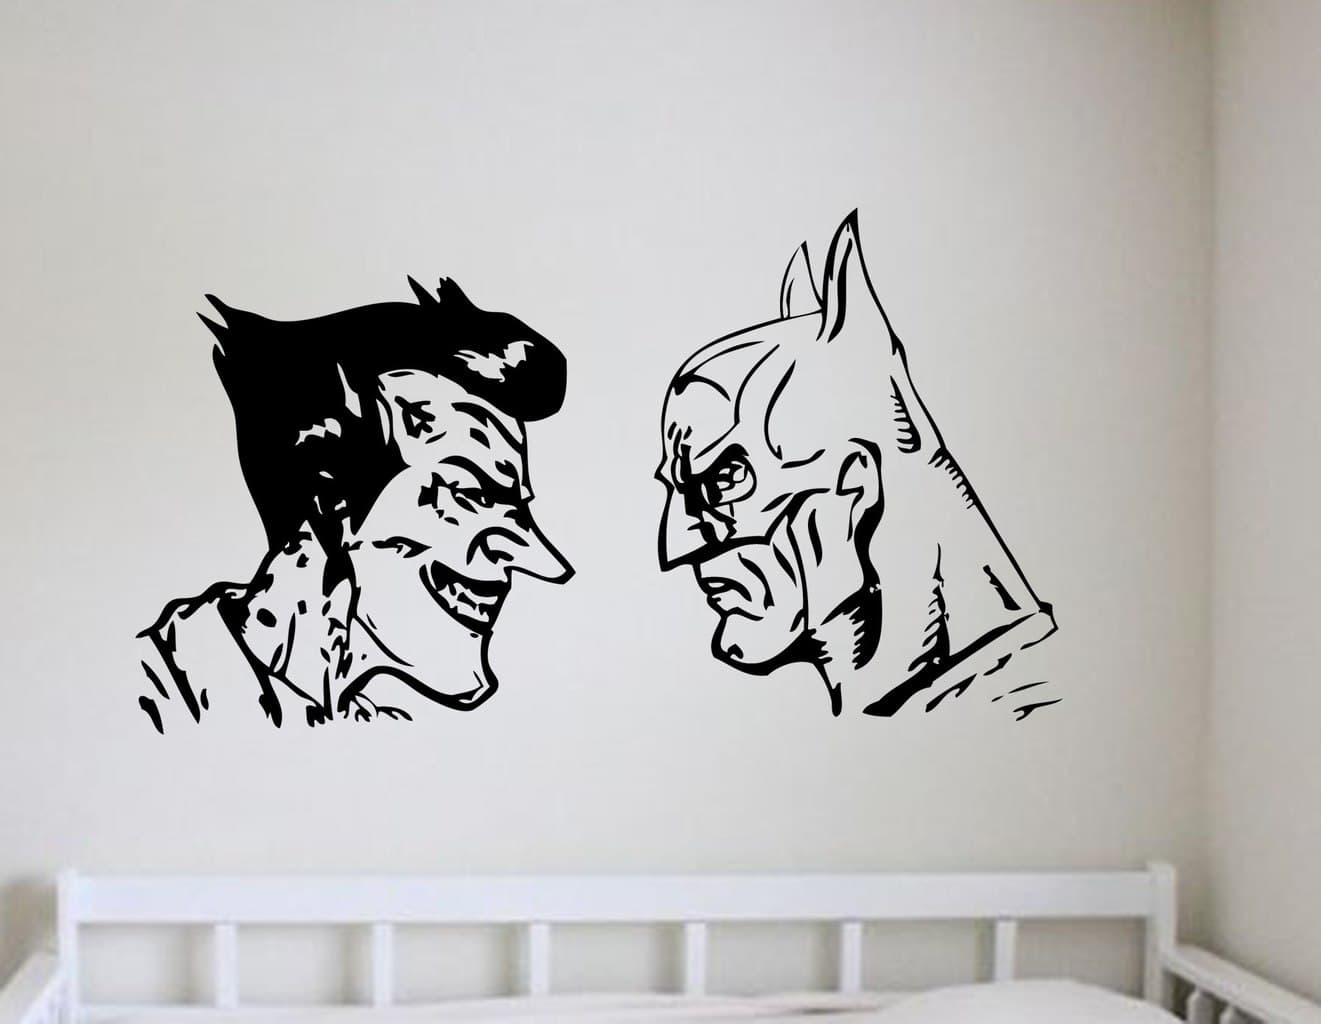 Wall Stickers Boys Bedroom Batman And Joker Wall Art Decal Wall Decal Wall Art